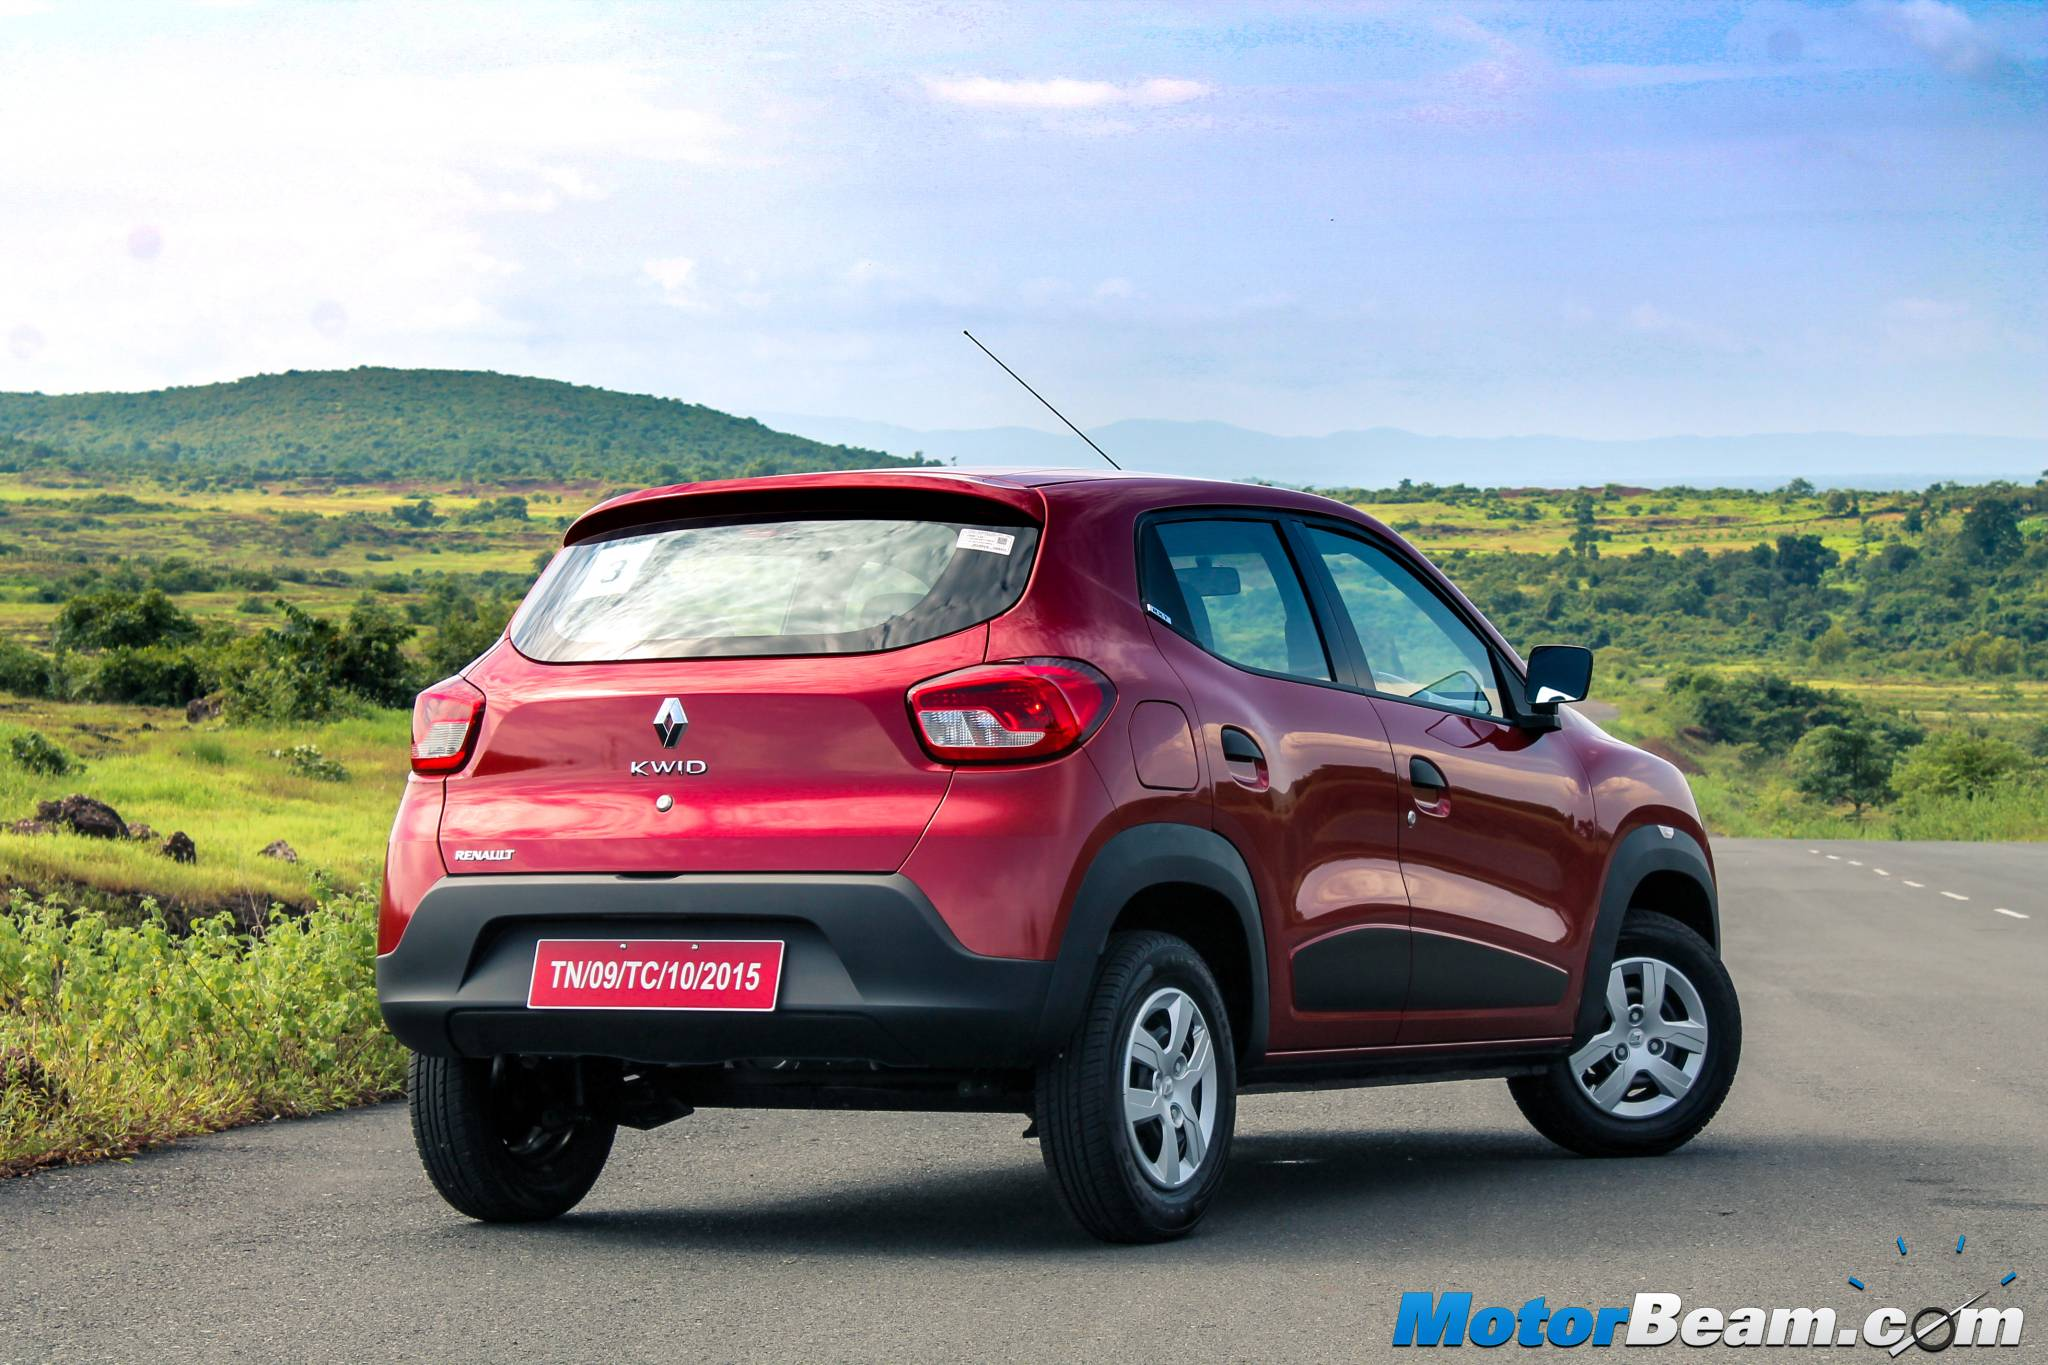 2015 Renault Kwid Launched Priced From Rs 2 57 Lakhs